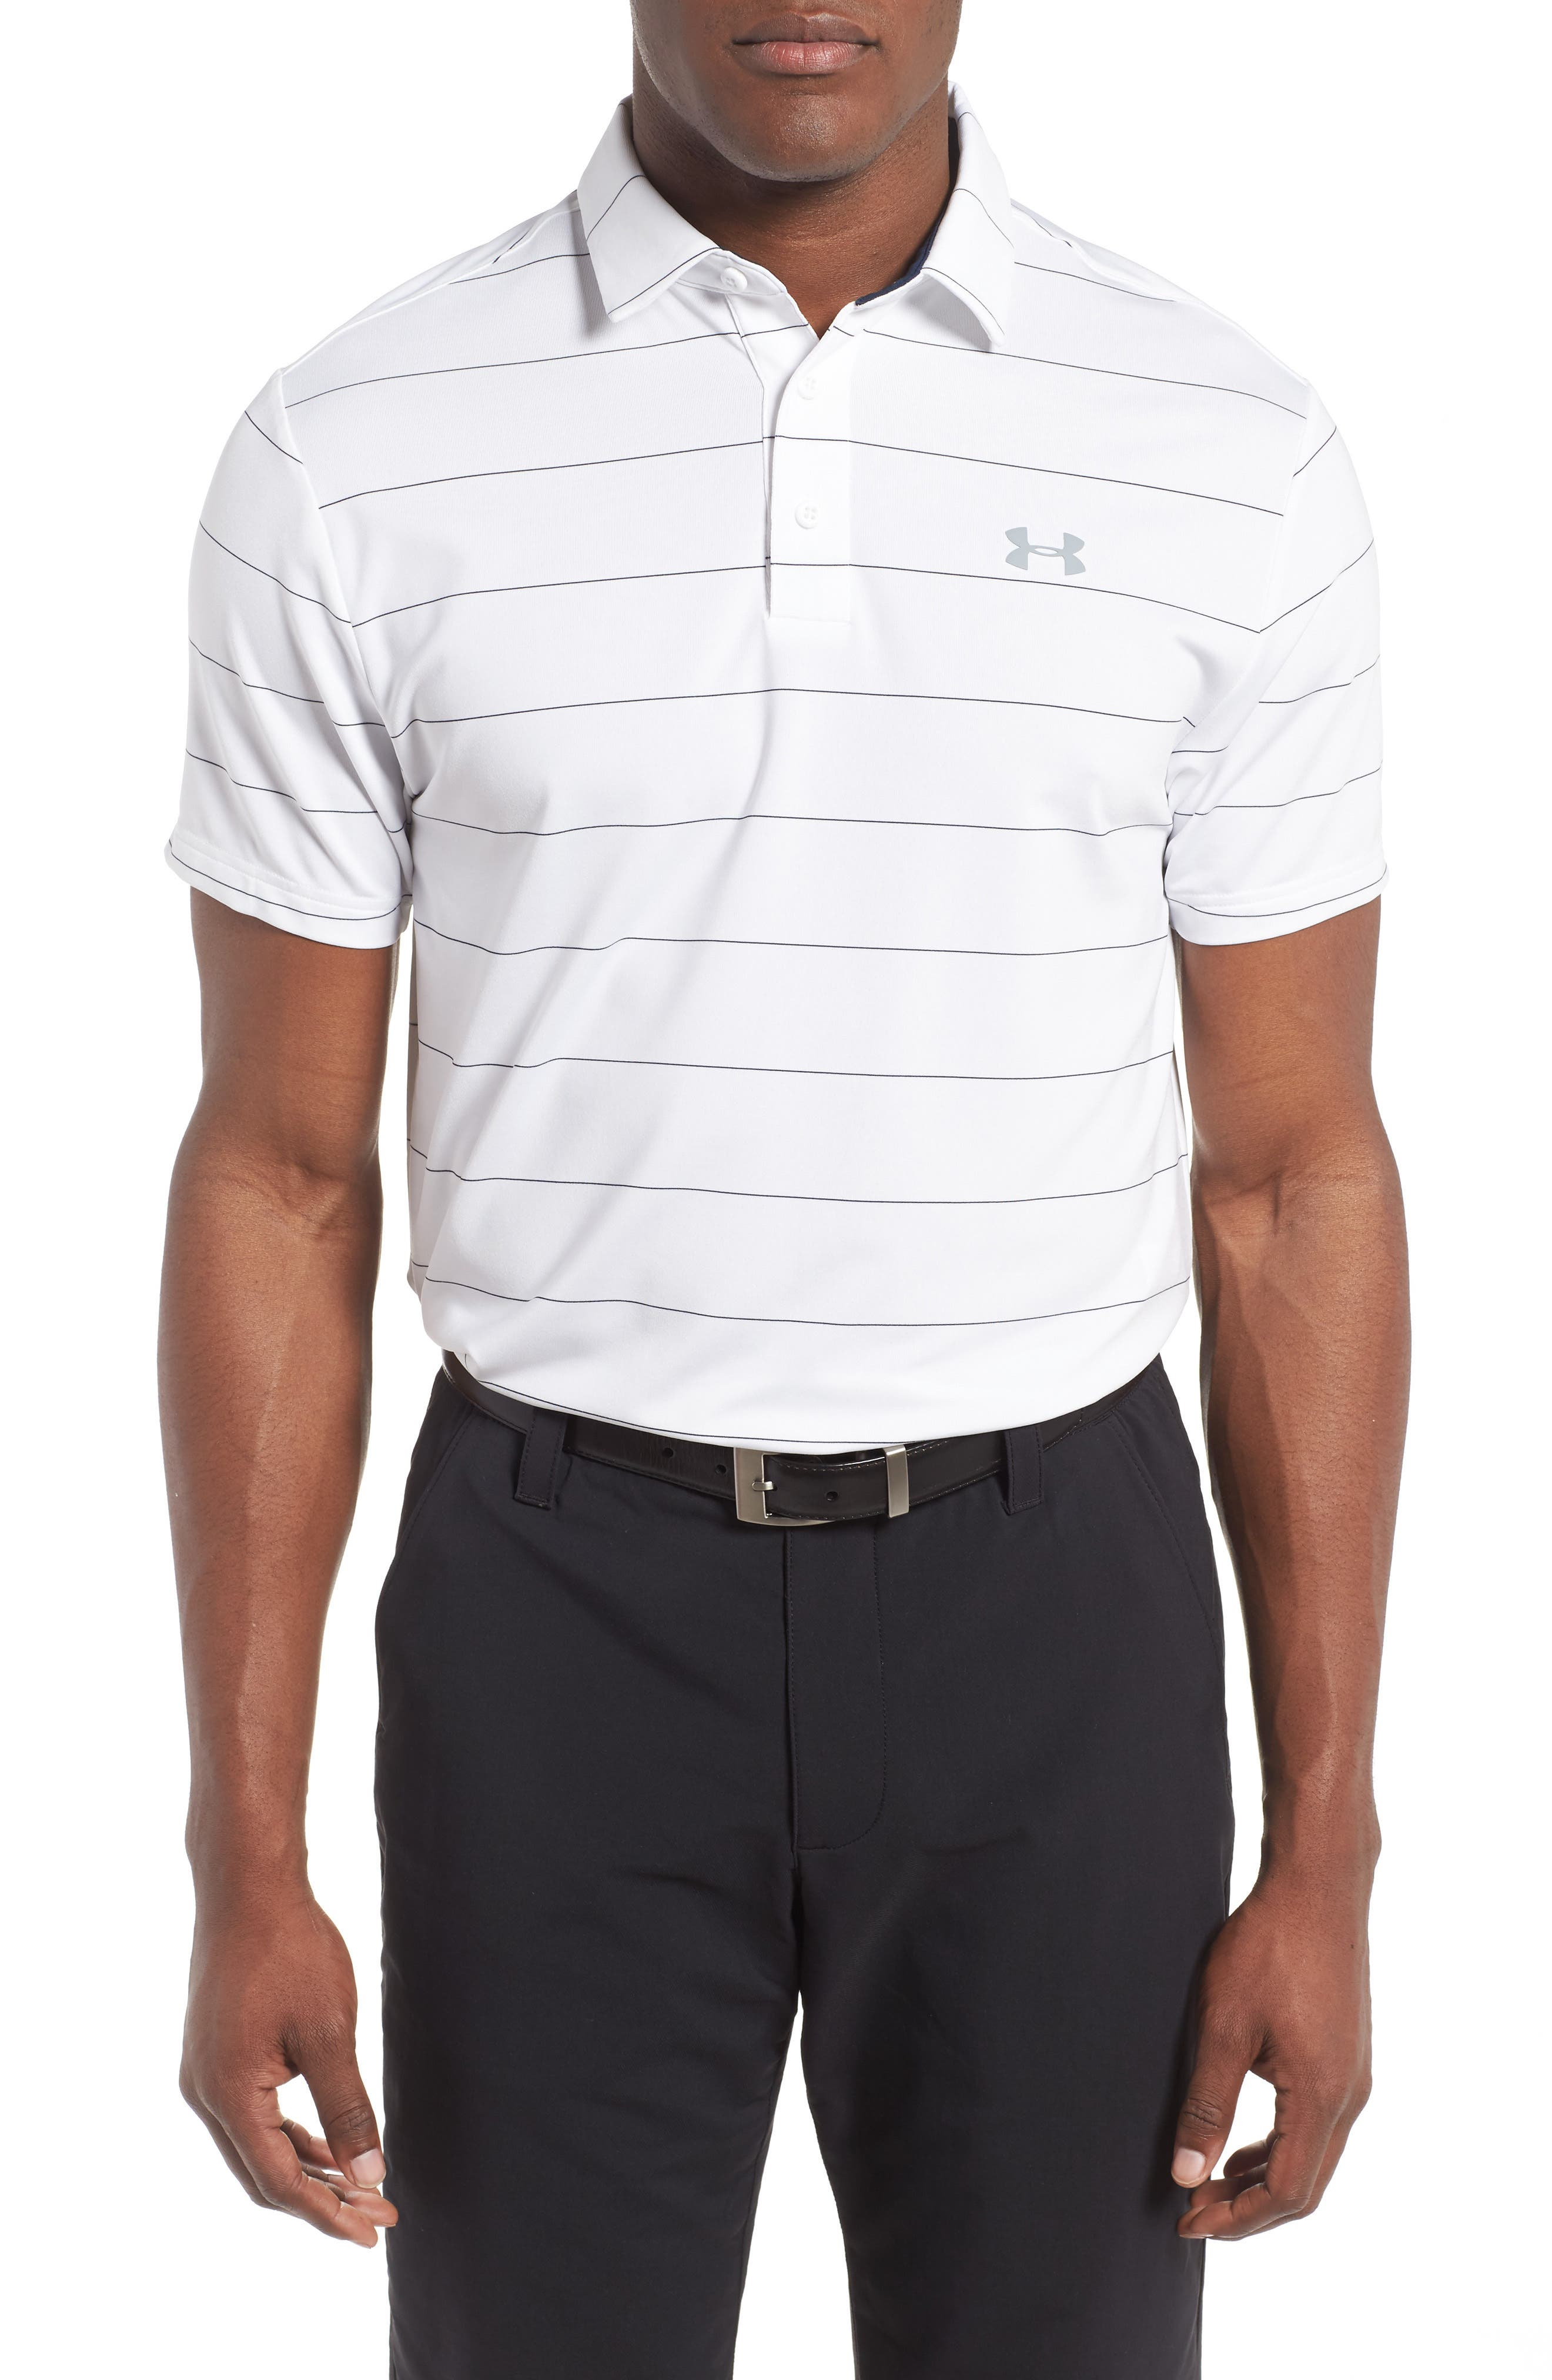 Alternate Image 1 Selected - Under Armour 'Playoff' Loose Fit Short Sleeve Polo